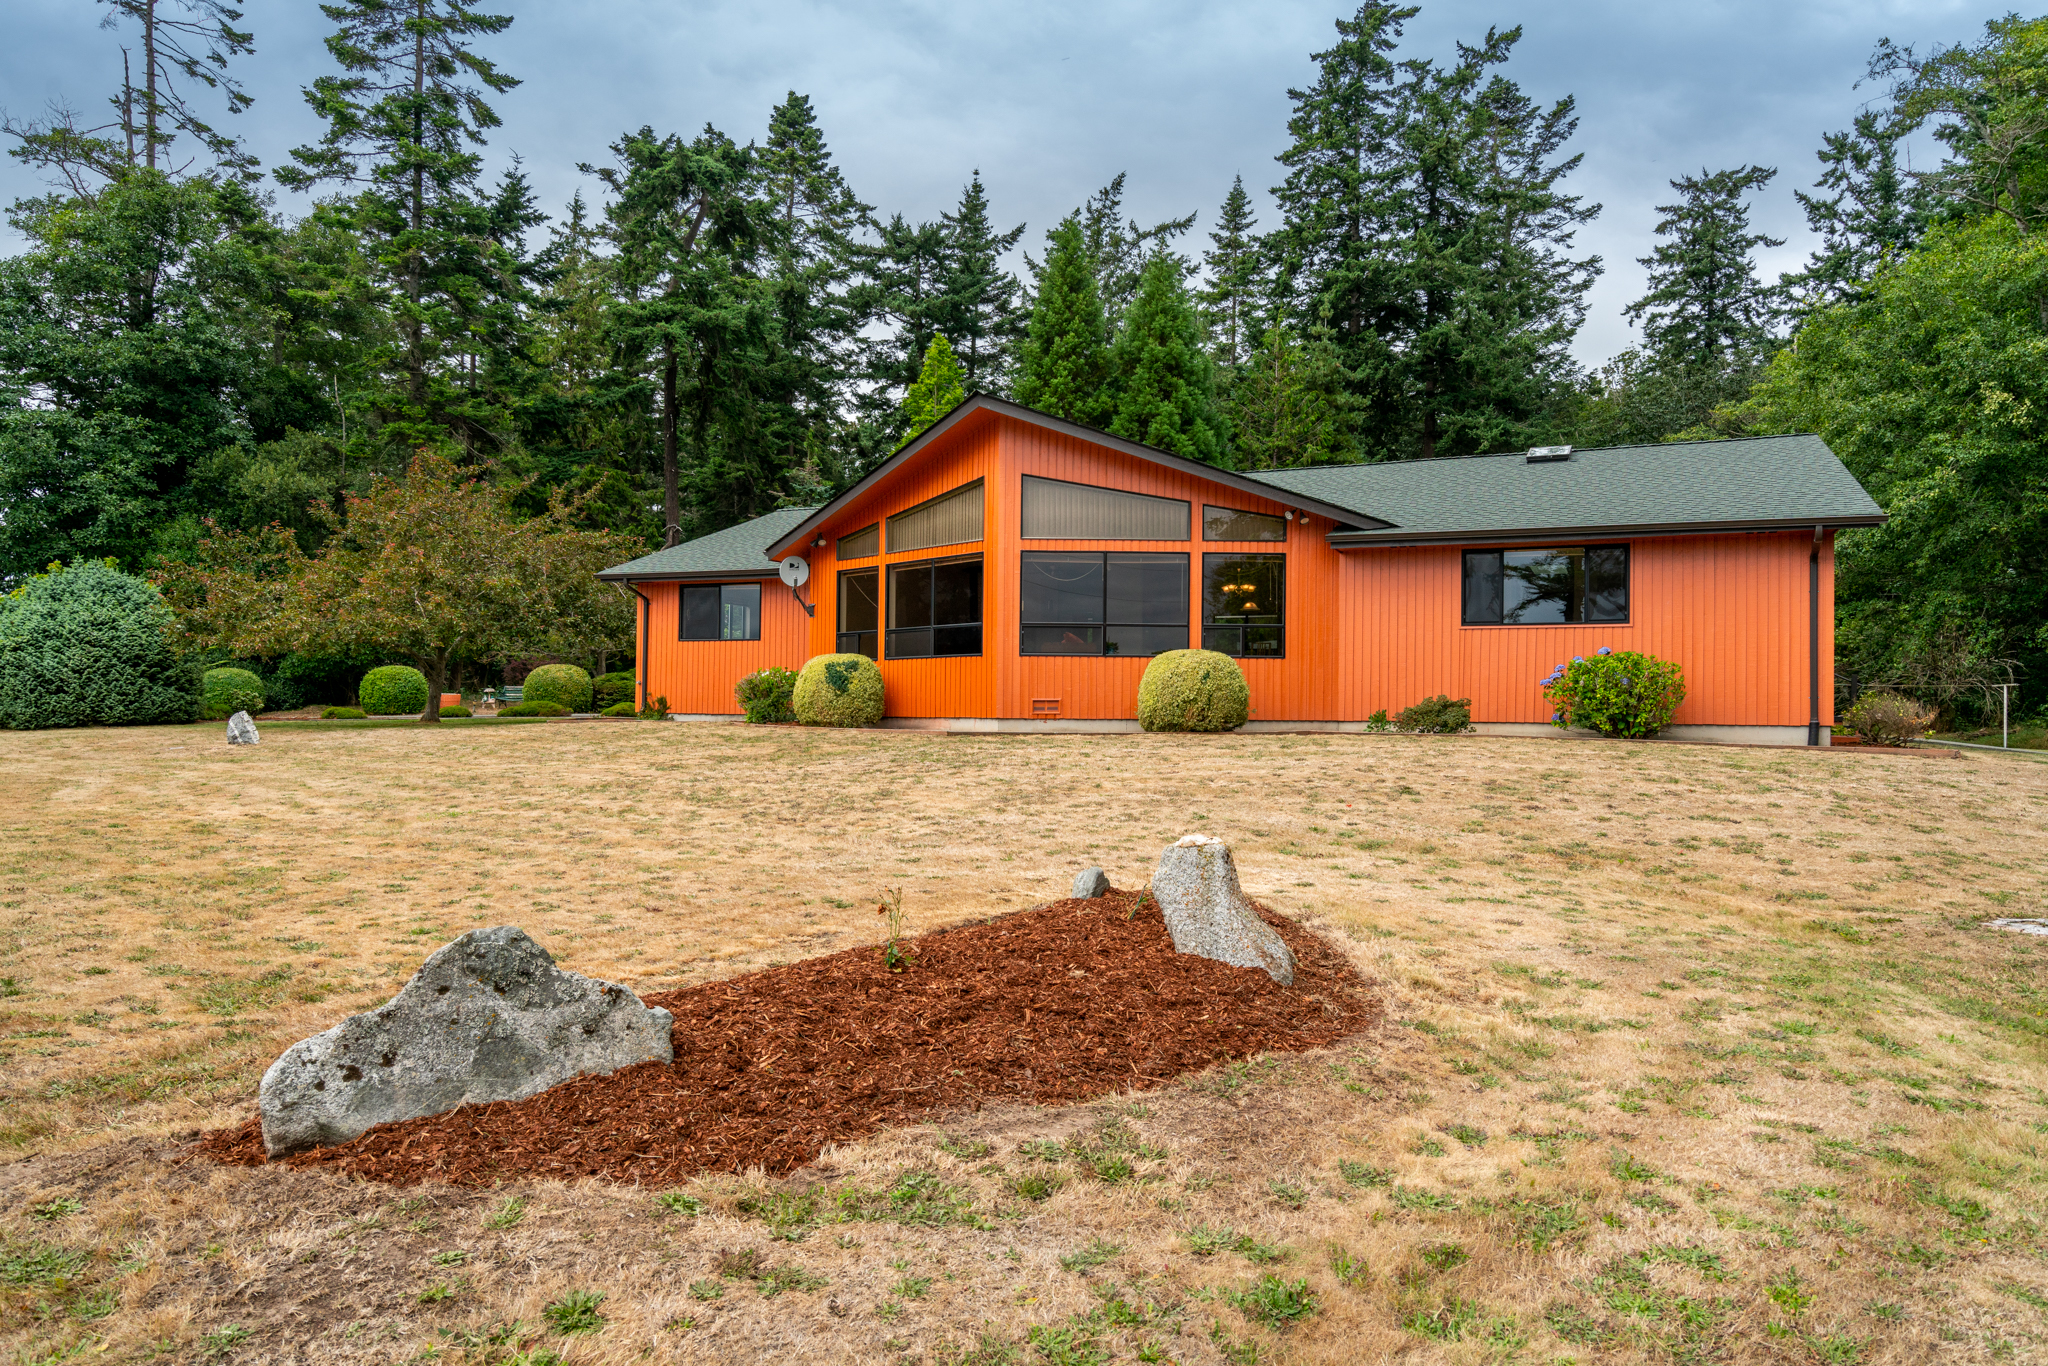 695 Eggerman Road - Coupeville, WA 98239